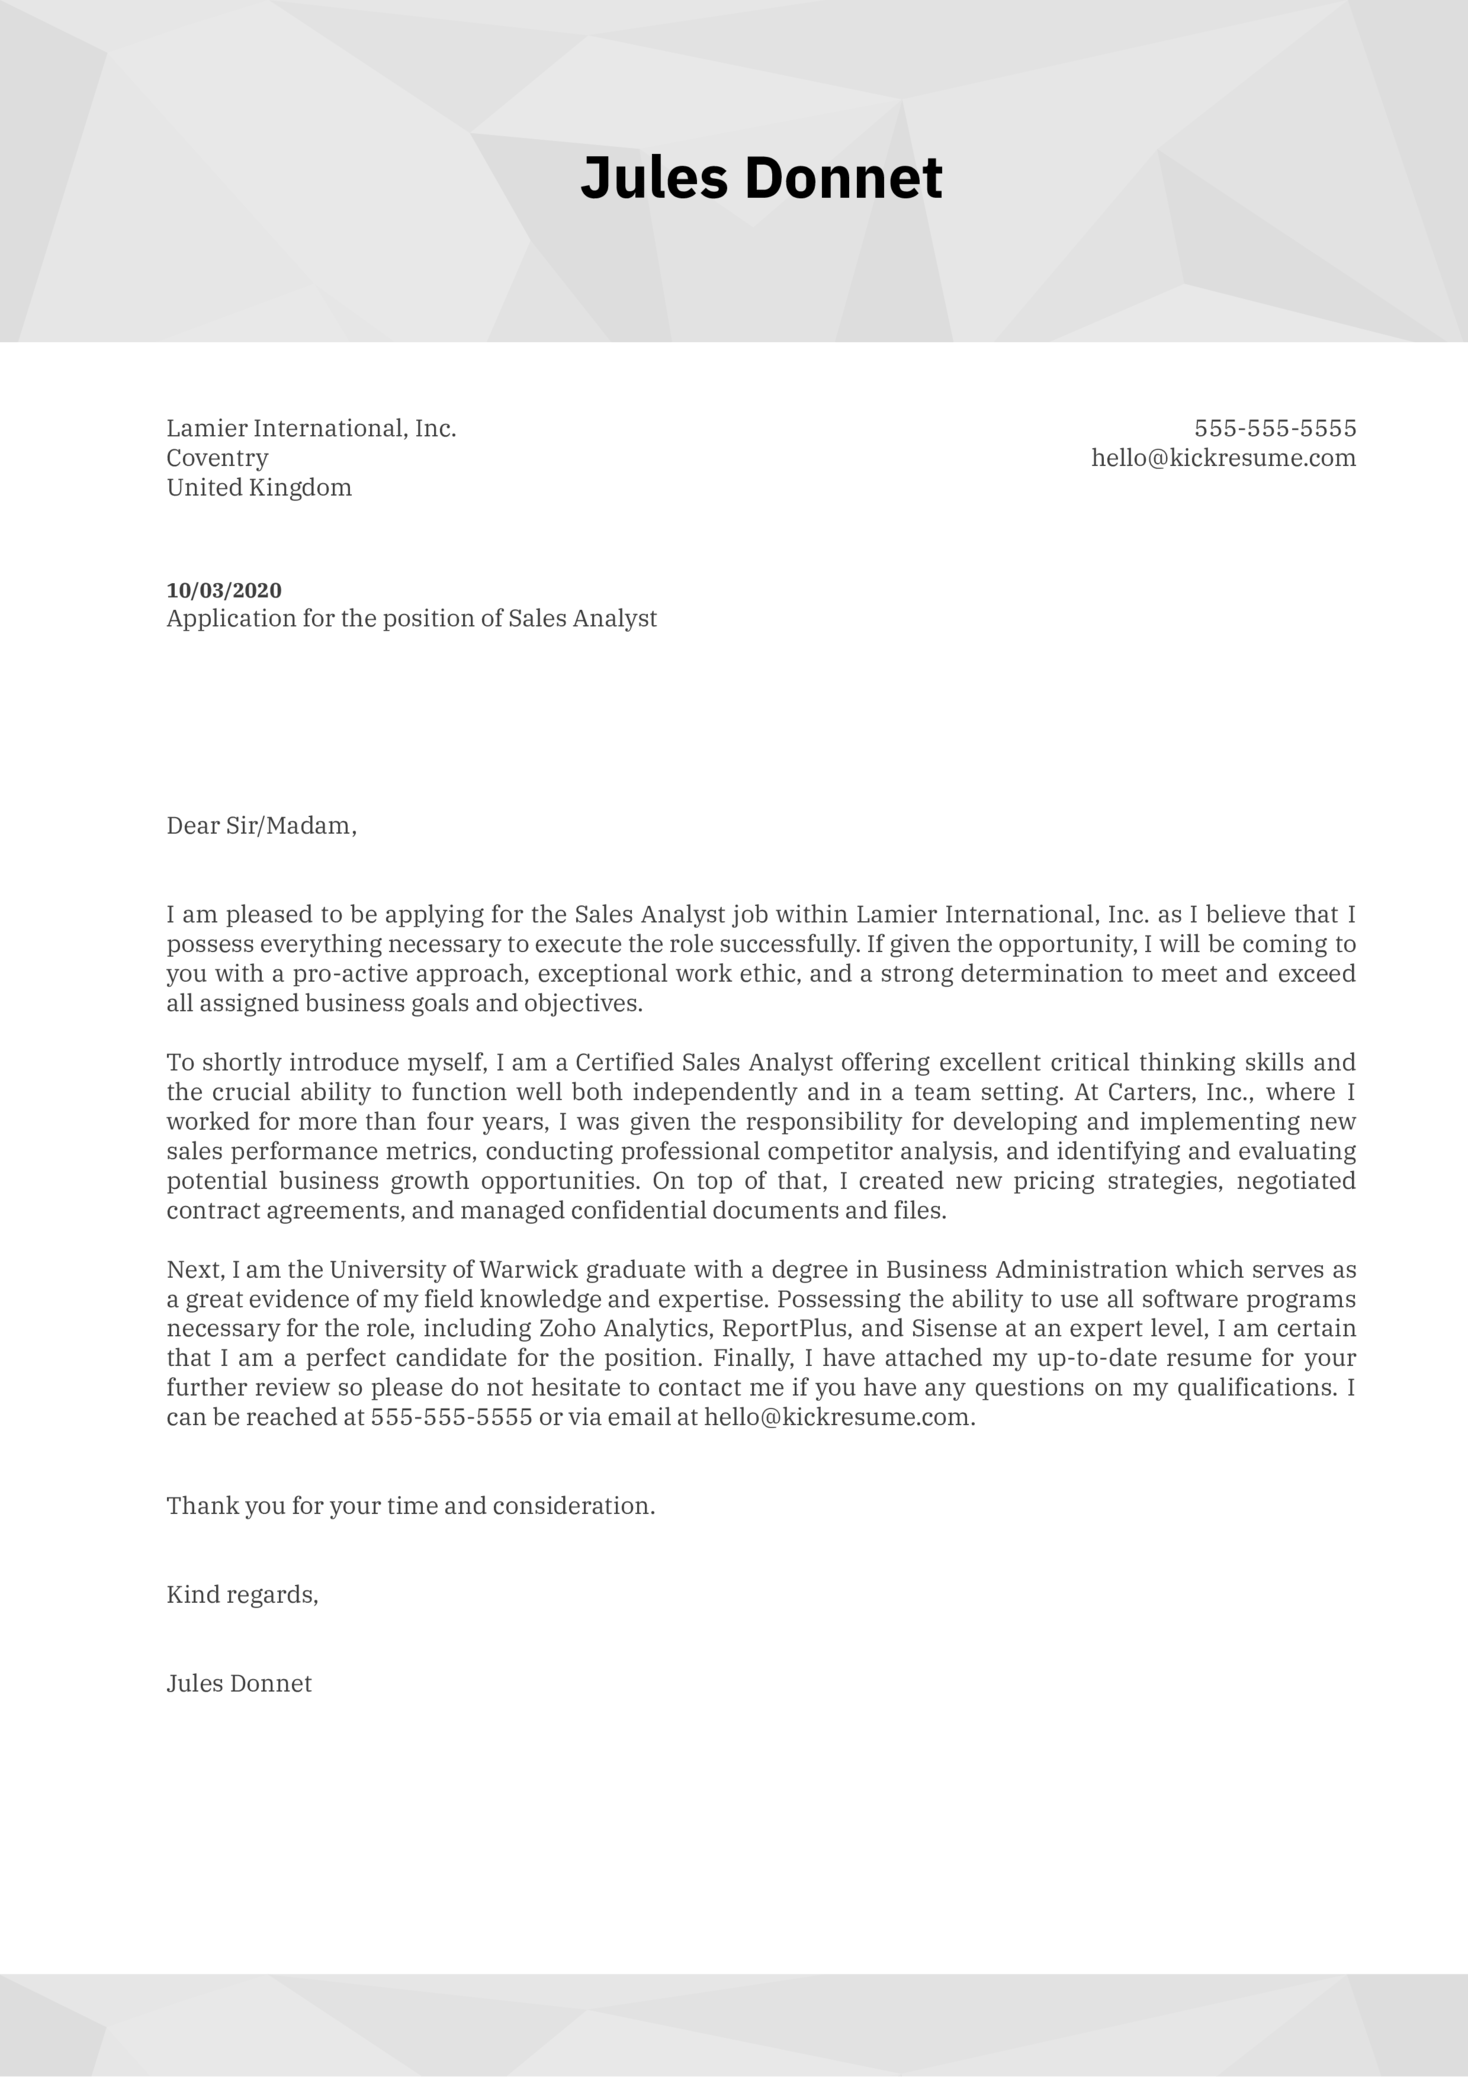 Sales Analyst Cover Letter Sample